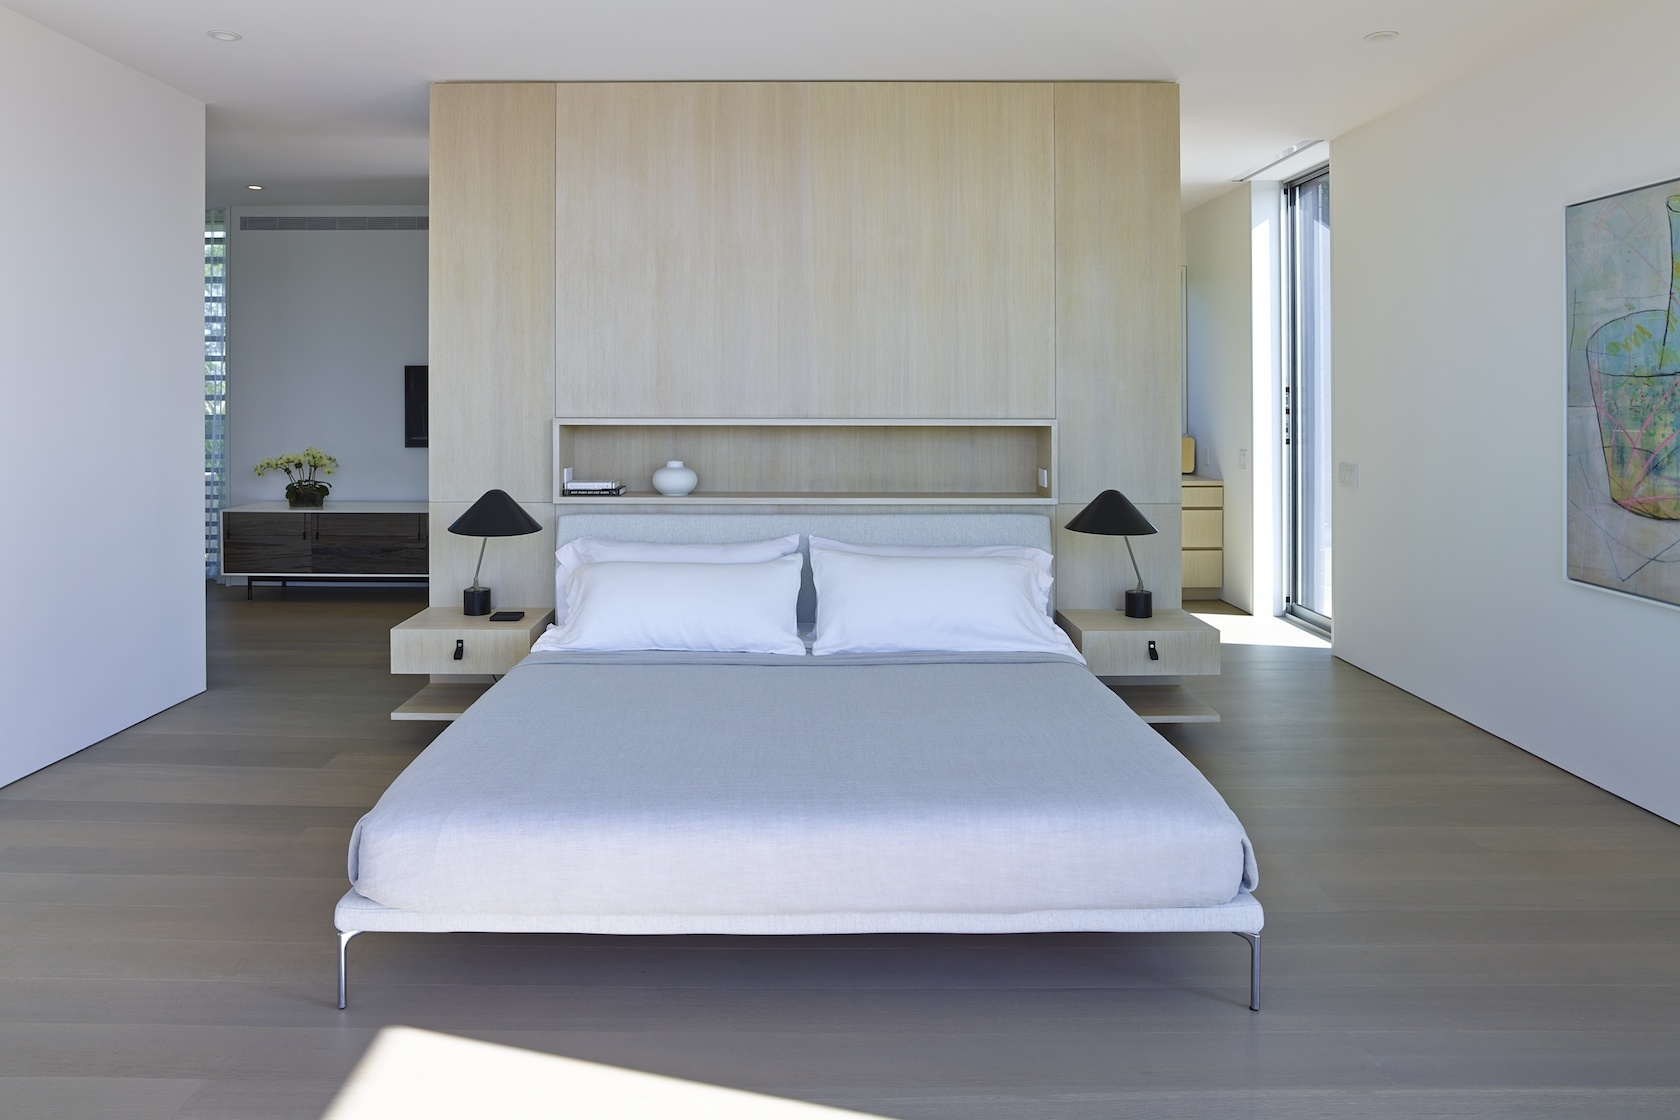 Sagaponack Modern House Interior Design Master Bedroom